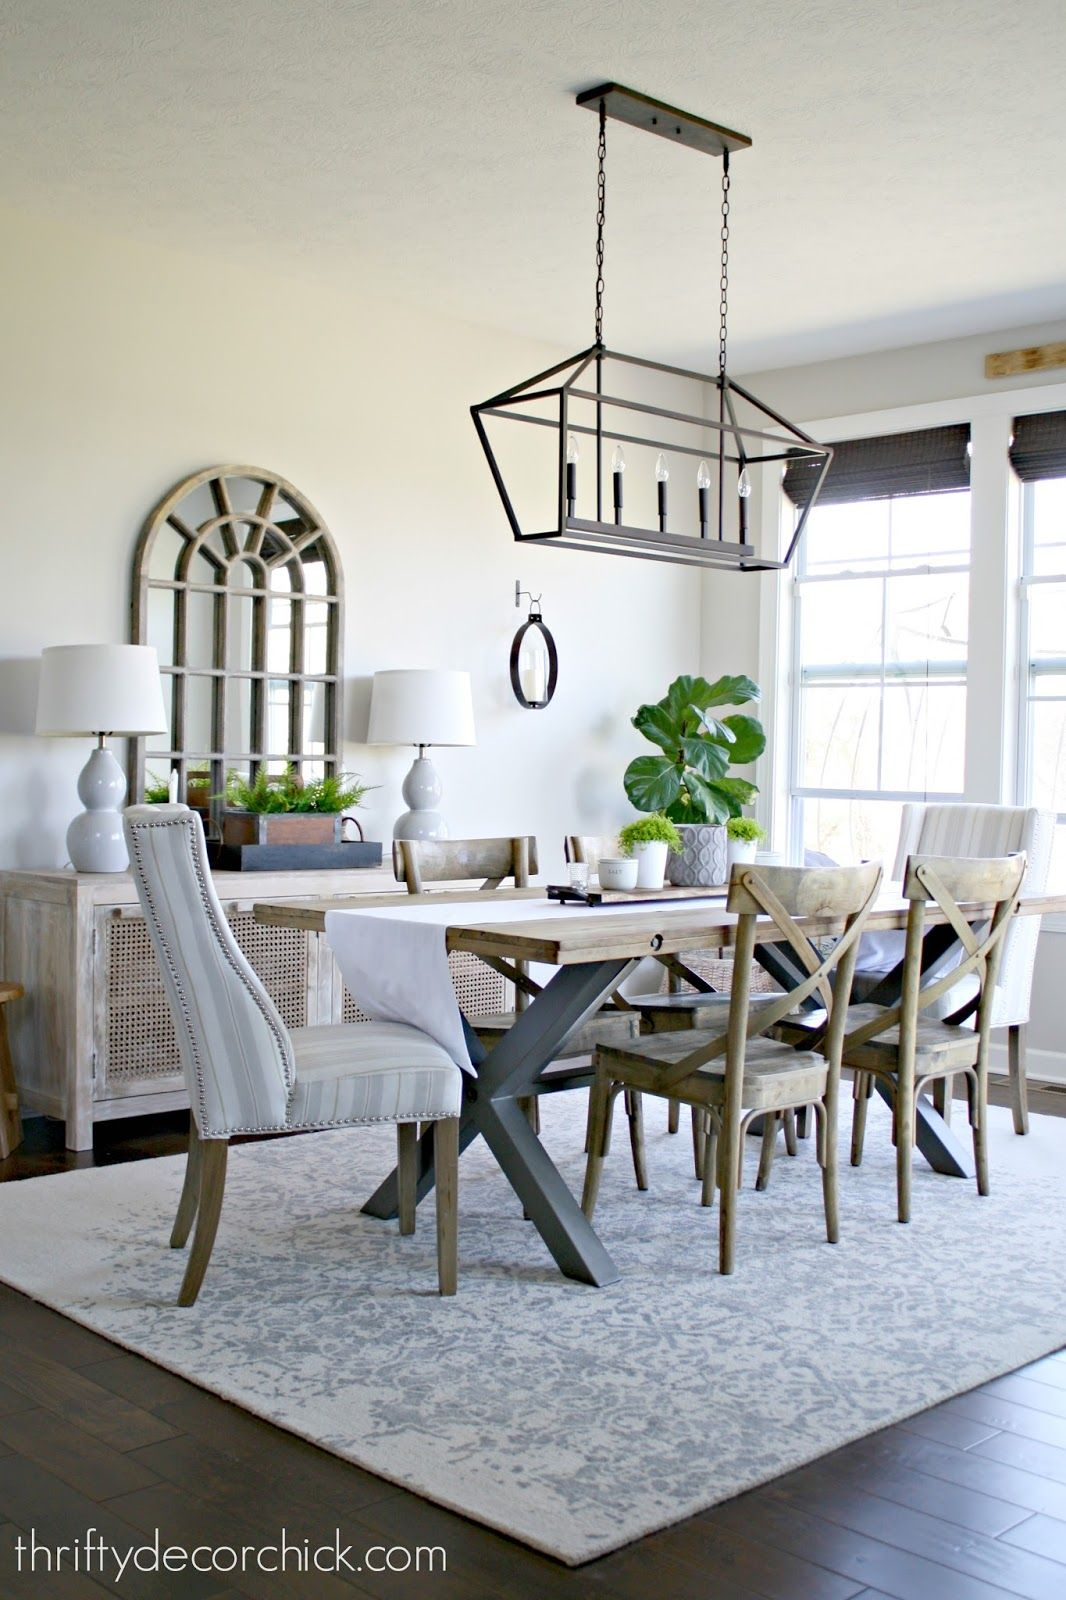 Come See How I Styled My Morning Room At Thrifty Decor